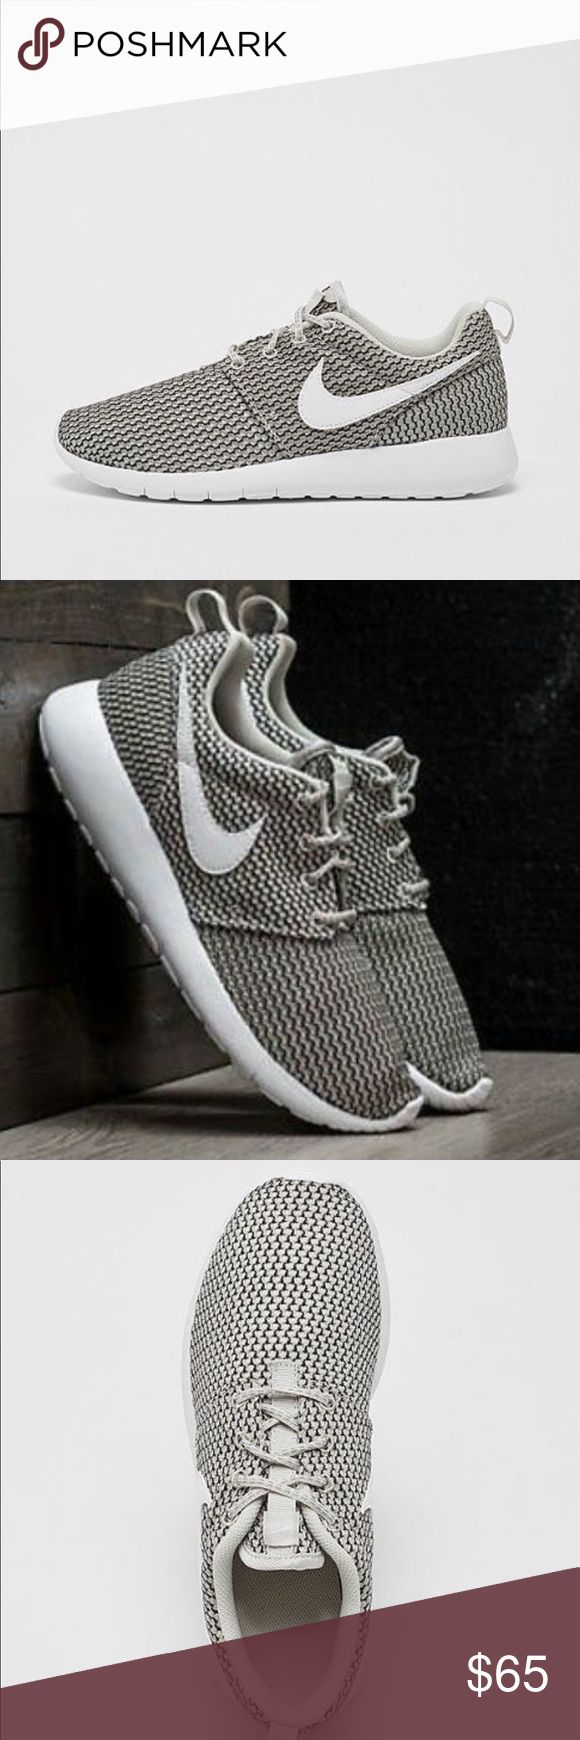 Nike Shoes 80 OFF!> Nike roshe one Women's Shoes Brand